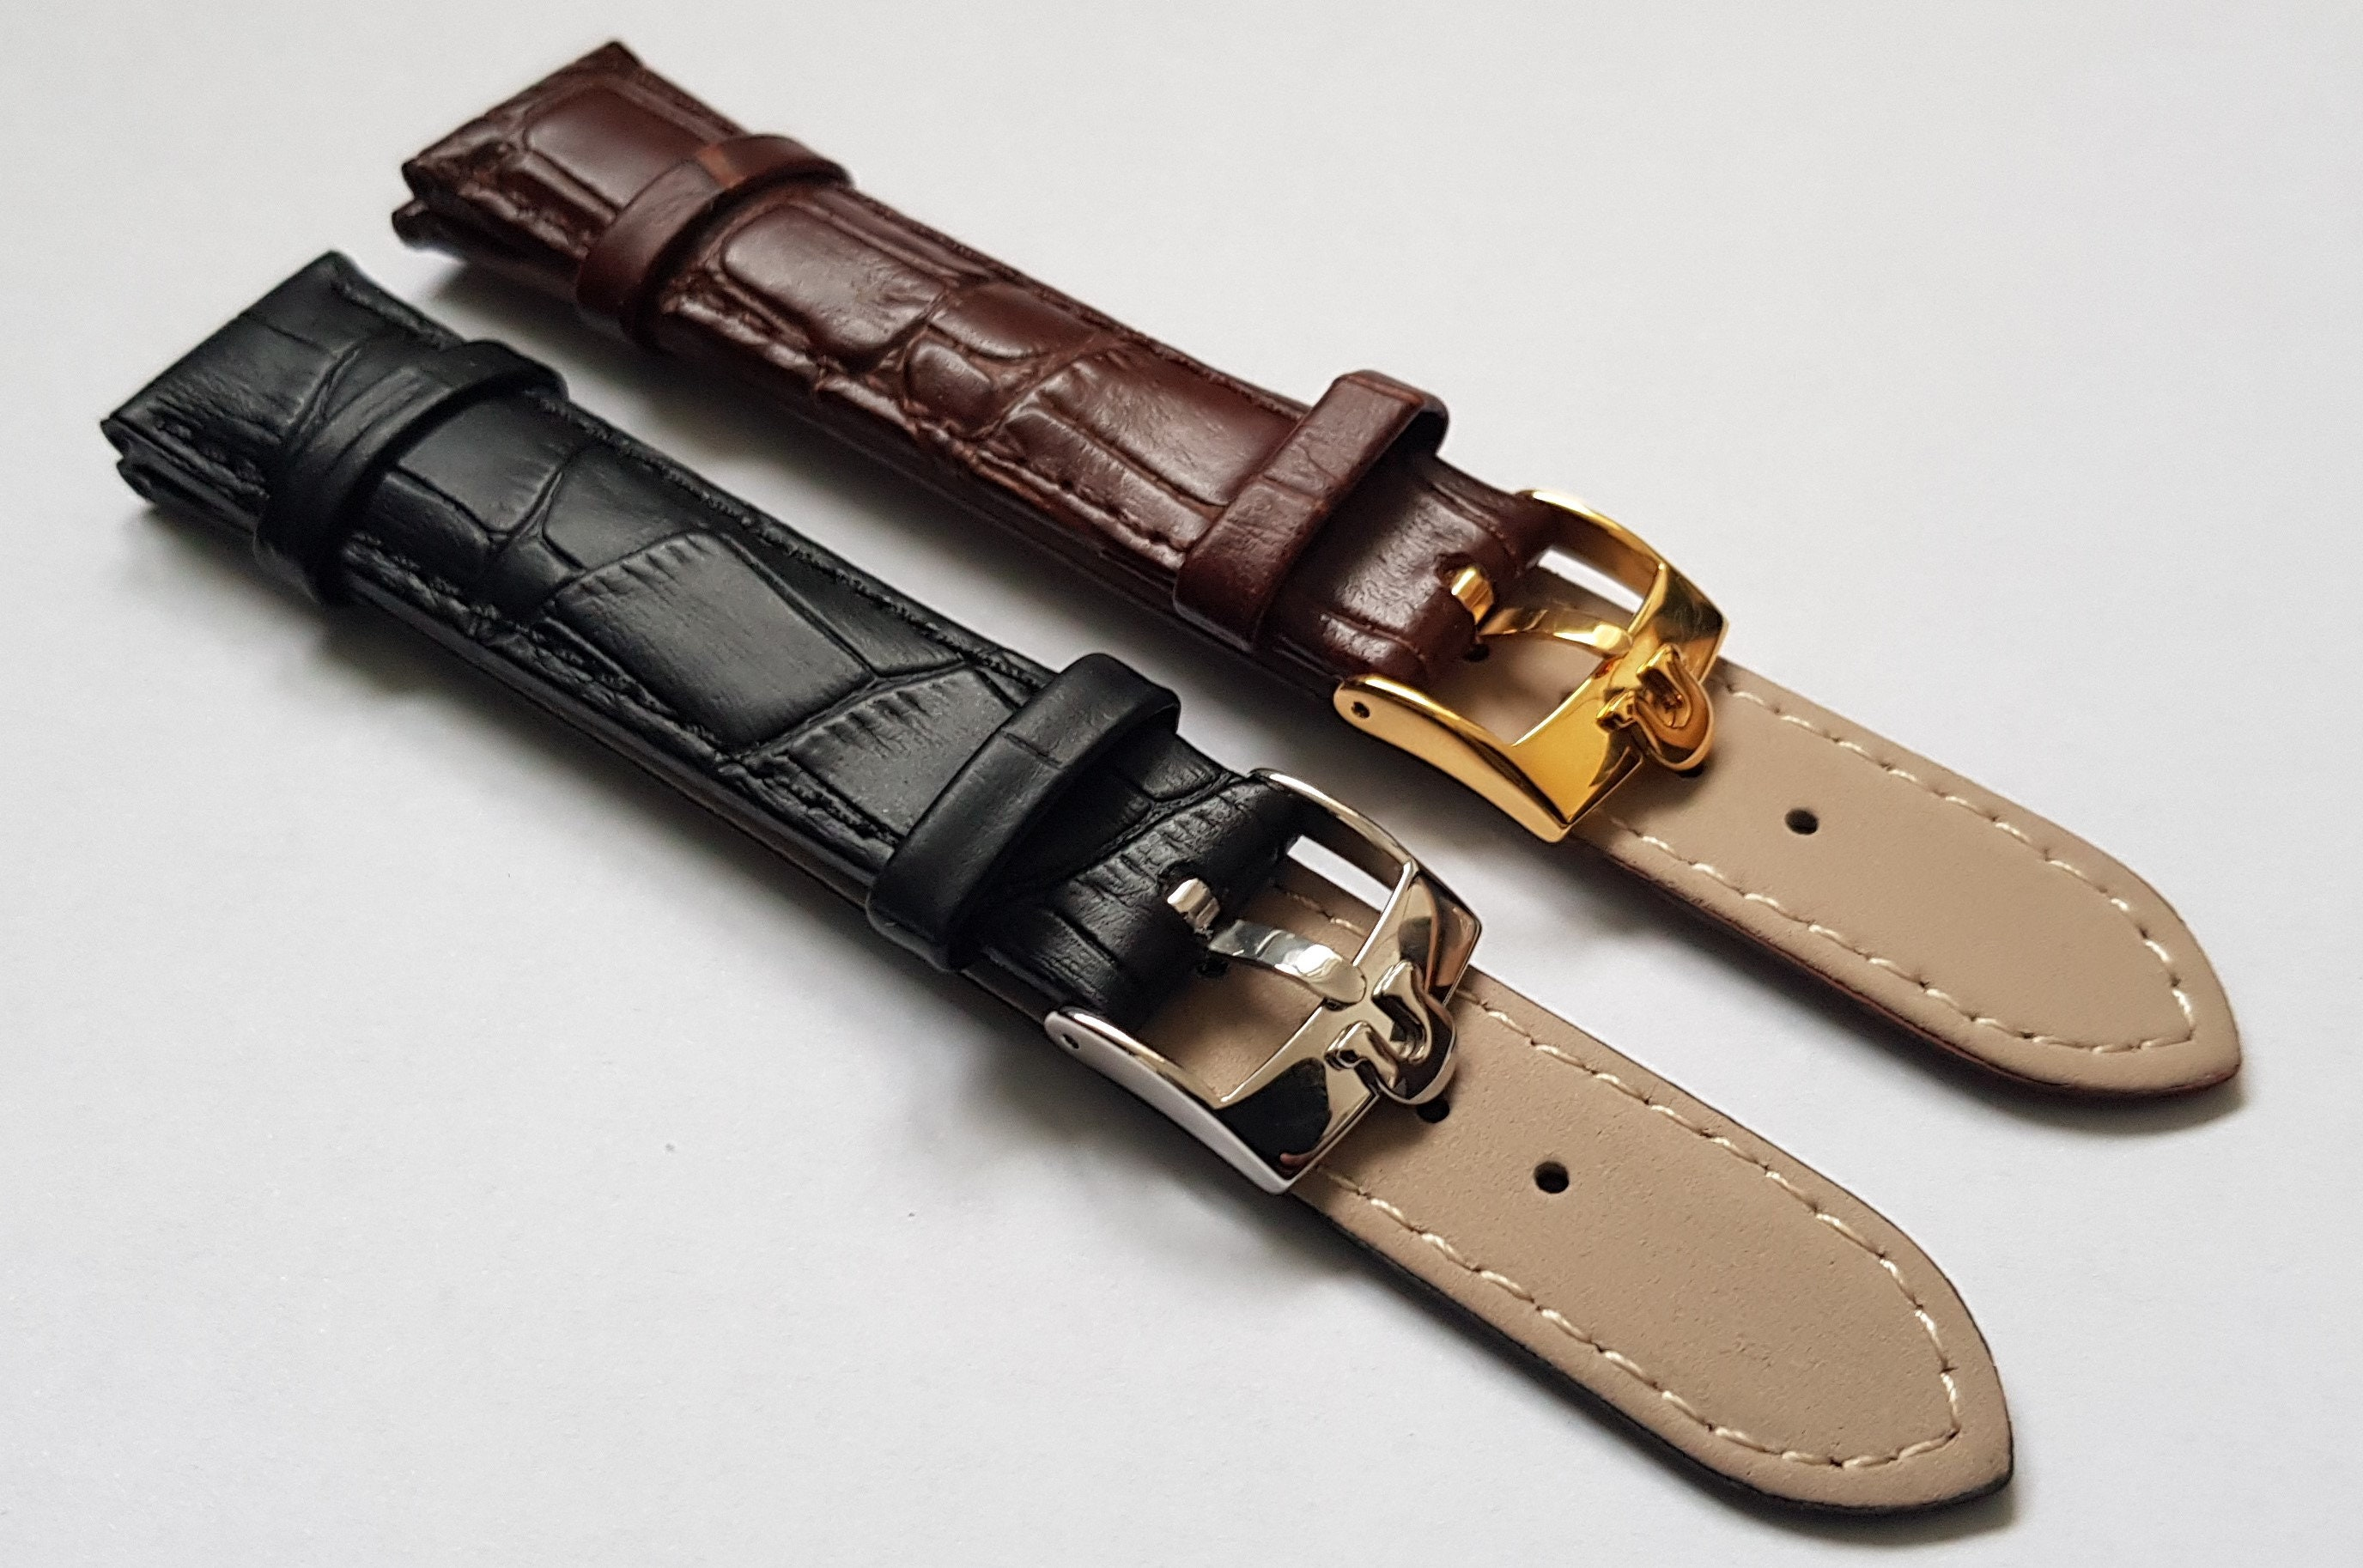 New 18/19/20mm Genuine Leather Gents Watch Strap Black/ Brown, Steel/ Gold Plated Buckle For Omega